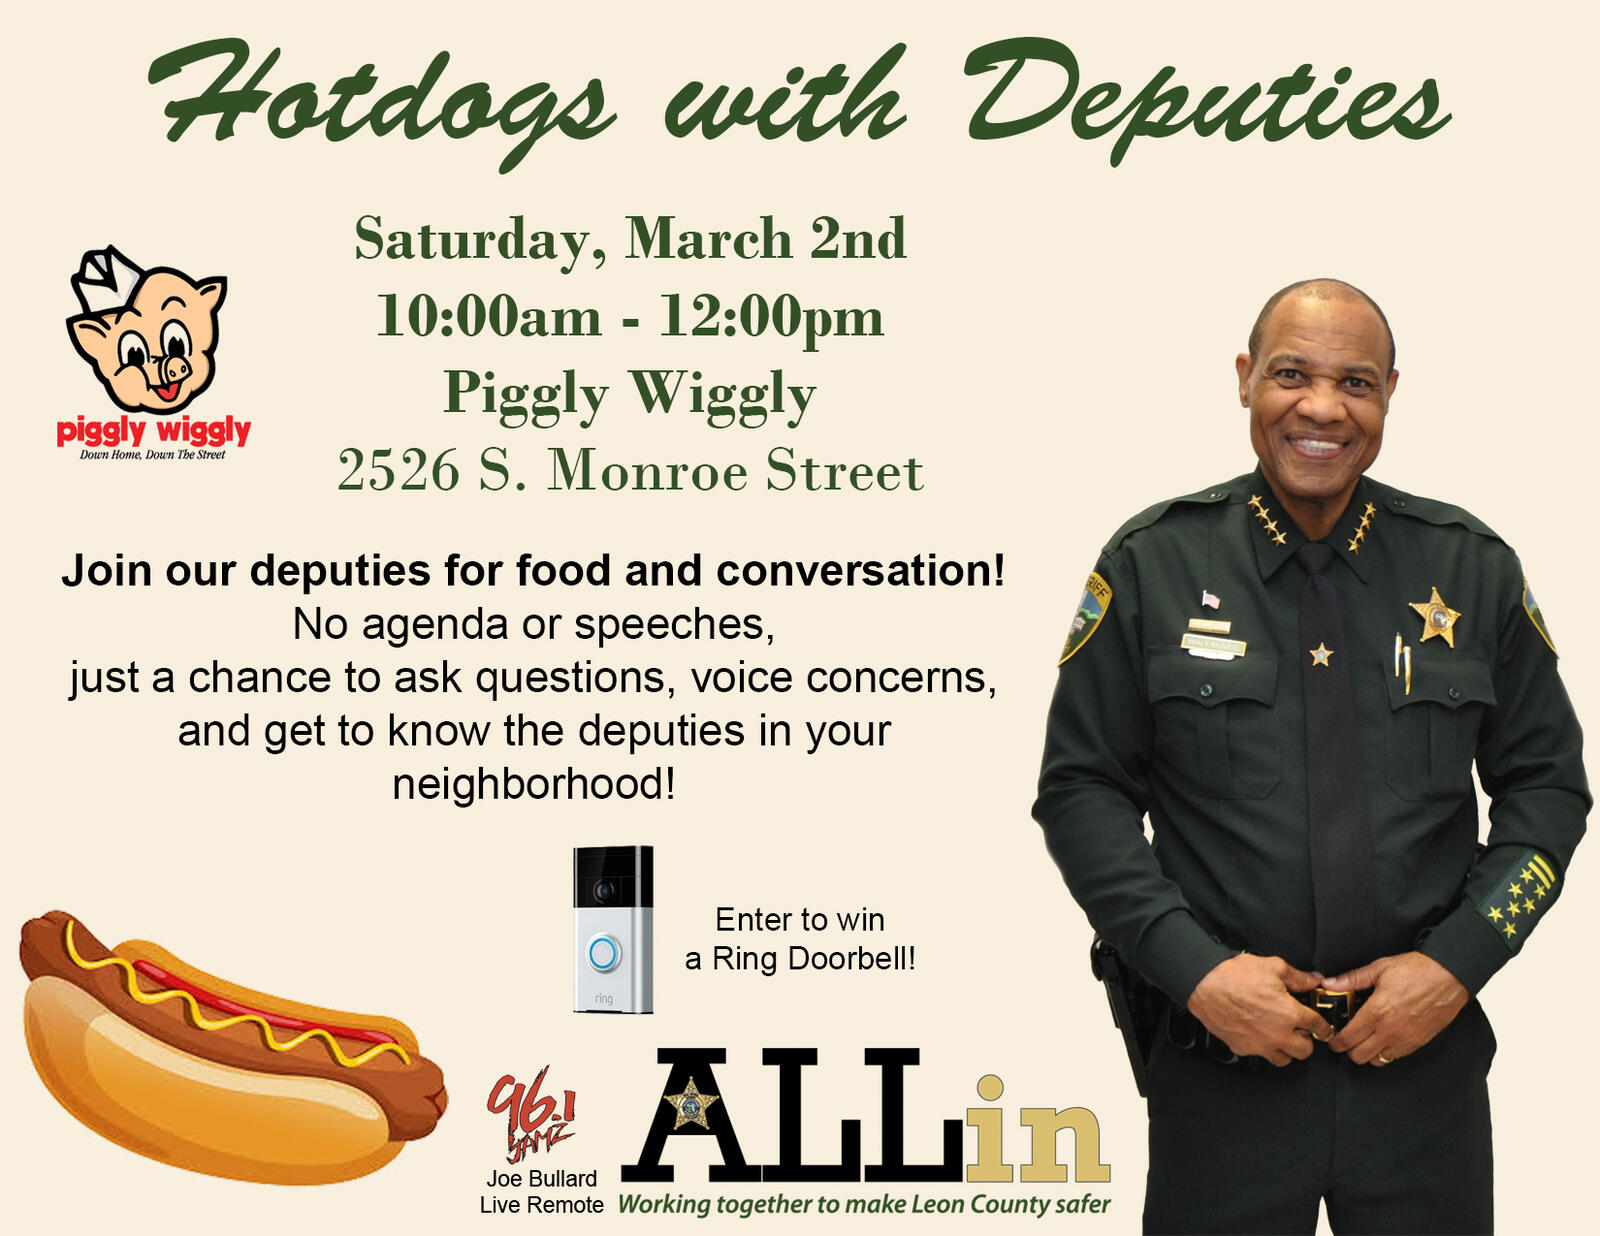 LCSO Hosts Hotdogs With Deputies Event (Leon County Sheriffs